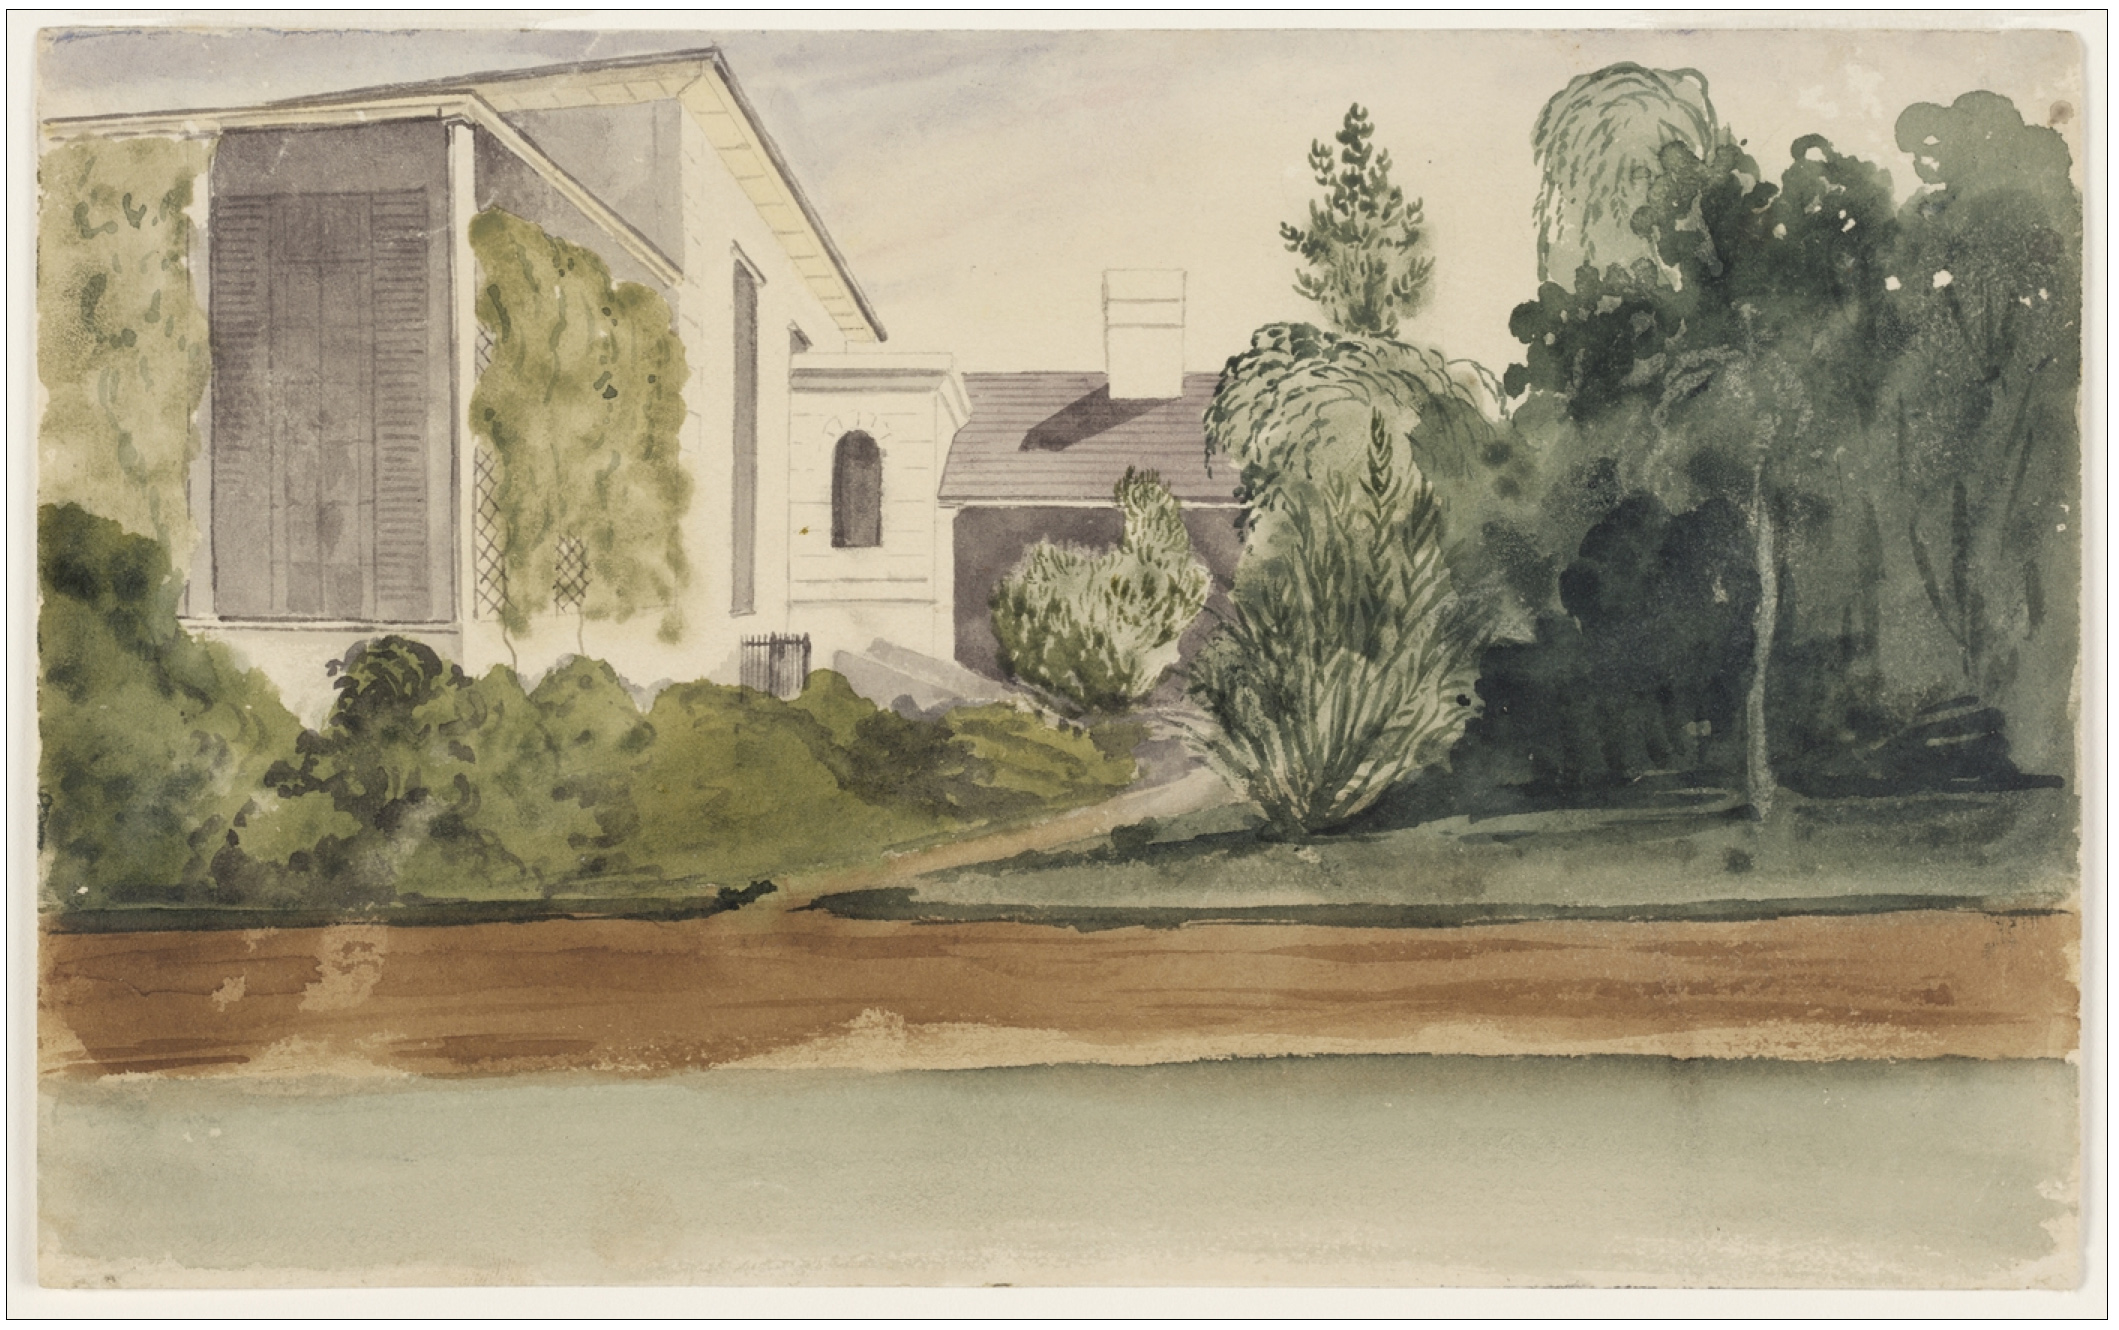 17(a). Stroud House, 1850. Watercolour. Unsigned, dated and titled on old mount. (Courtesy of State Library of NSW)